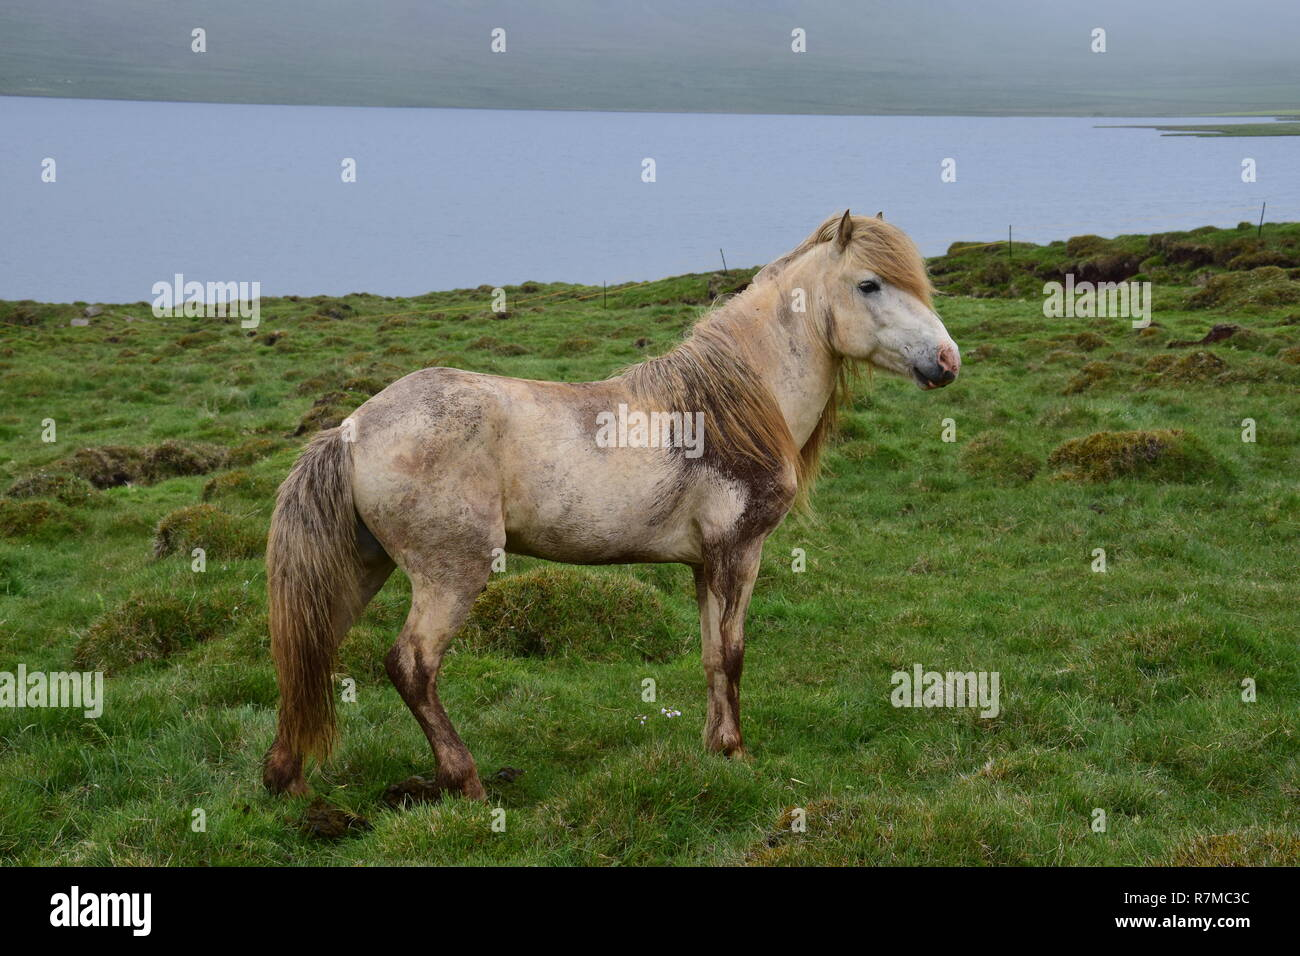 White Icelandic stallion with stains of dirt and mud. Icelandic landscape with bad weather in the background. - Stock Image